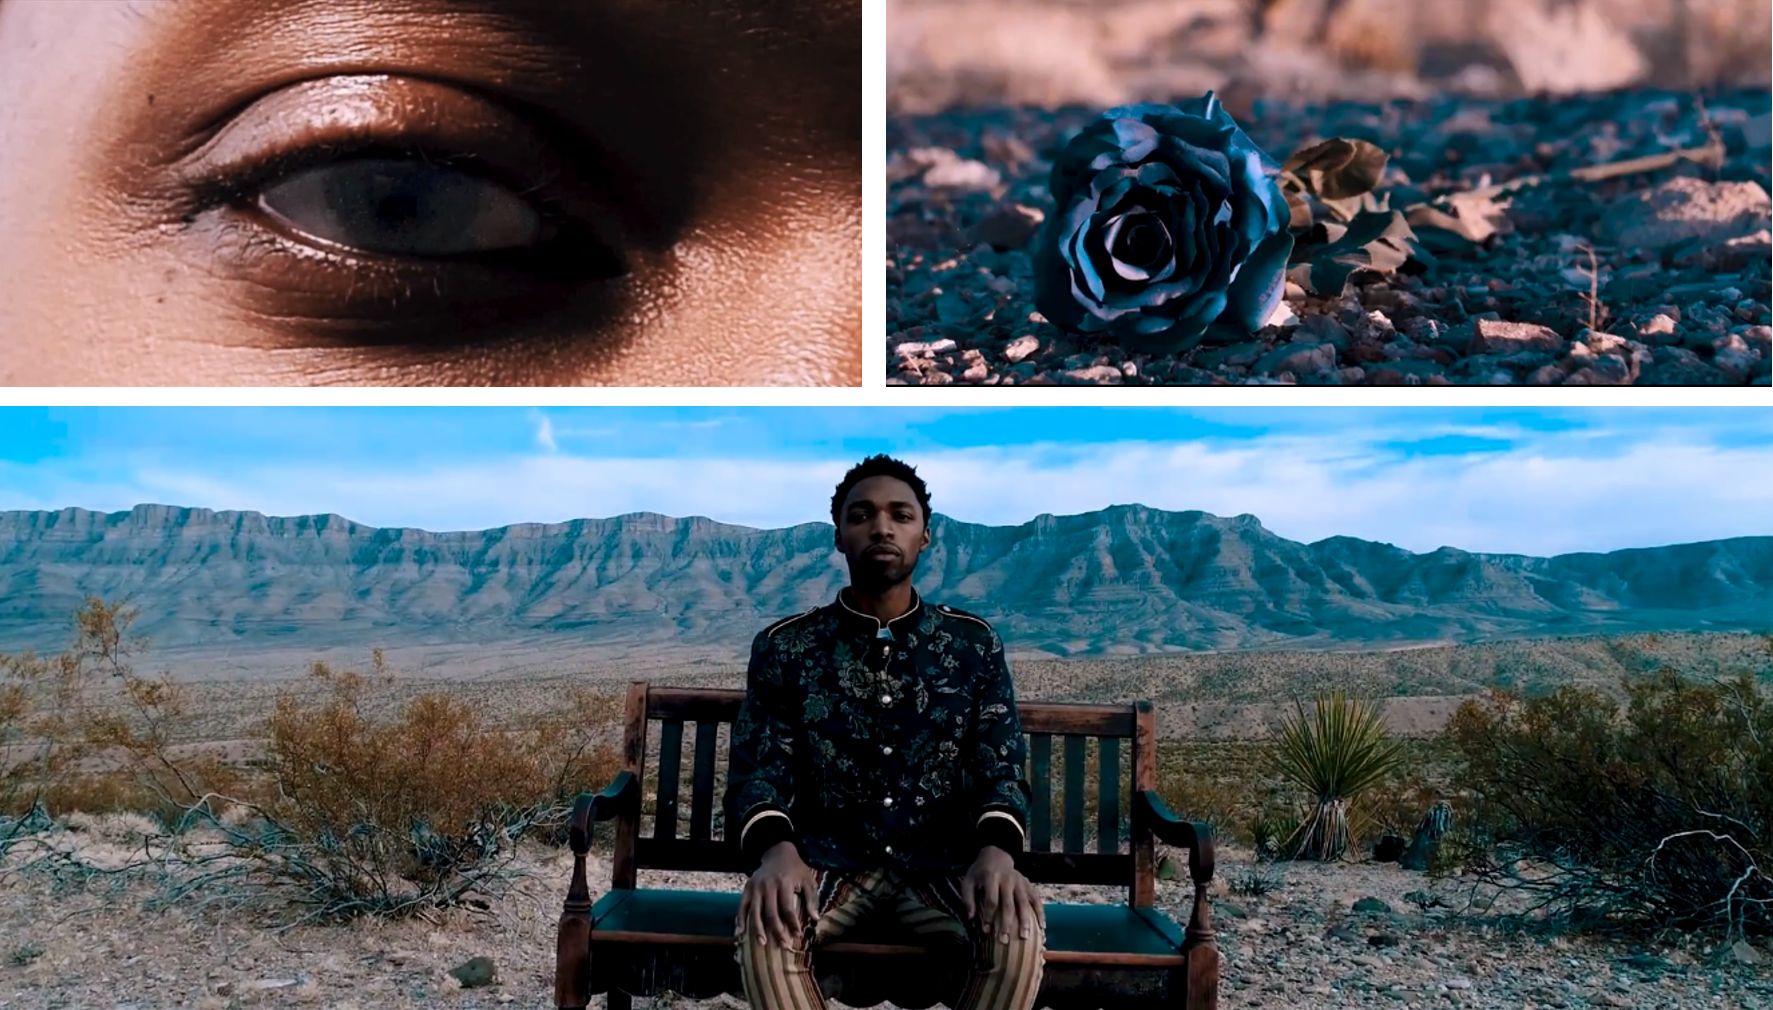 Stills from Red Love video - Directed by Ricky Staffieri, produced by Merissa Rocco and Ben Fout